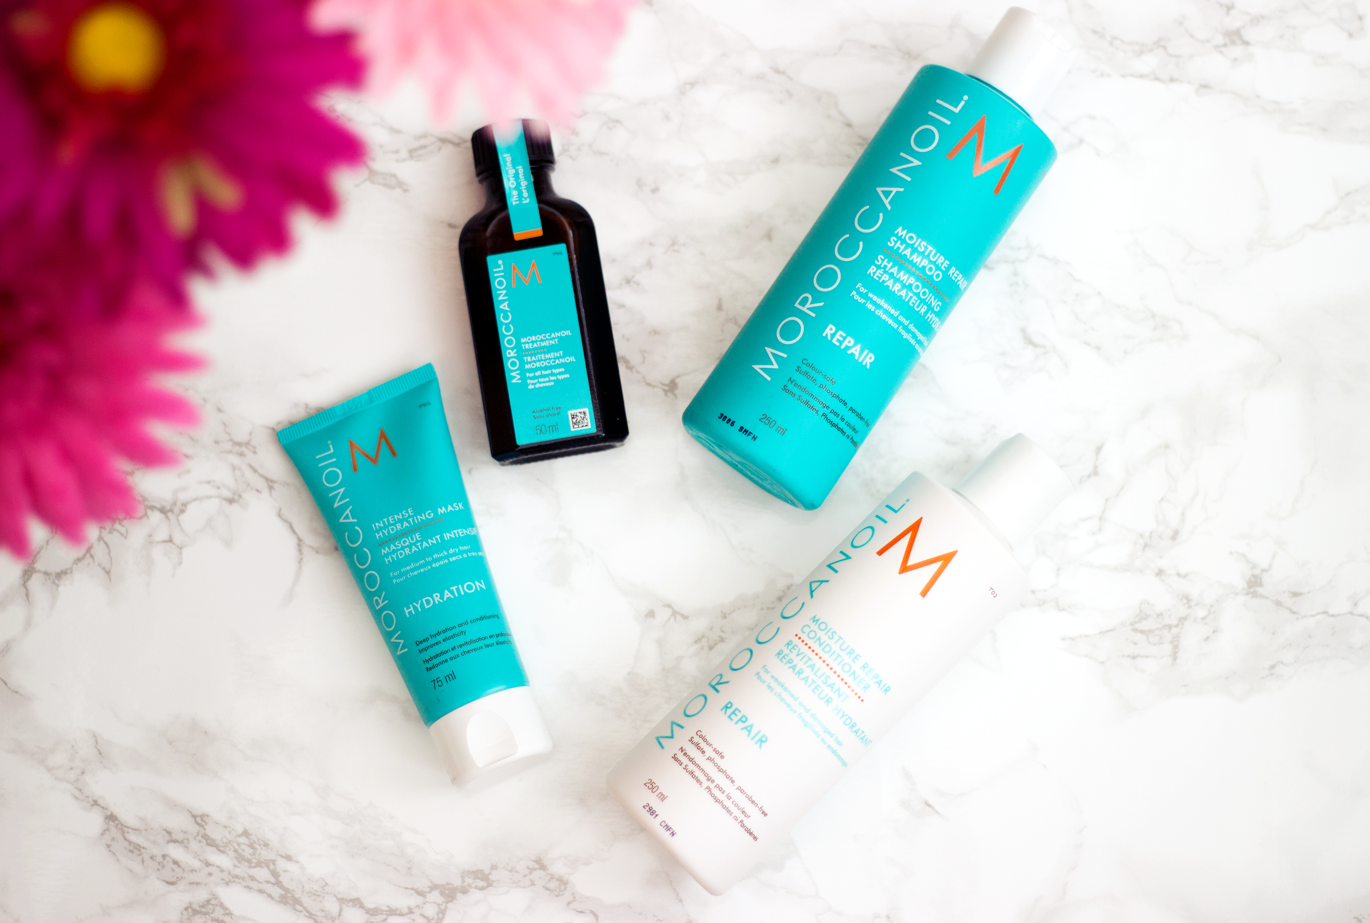 Moroccan Oil Haircare, Moroccan Oil Treatment Oil